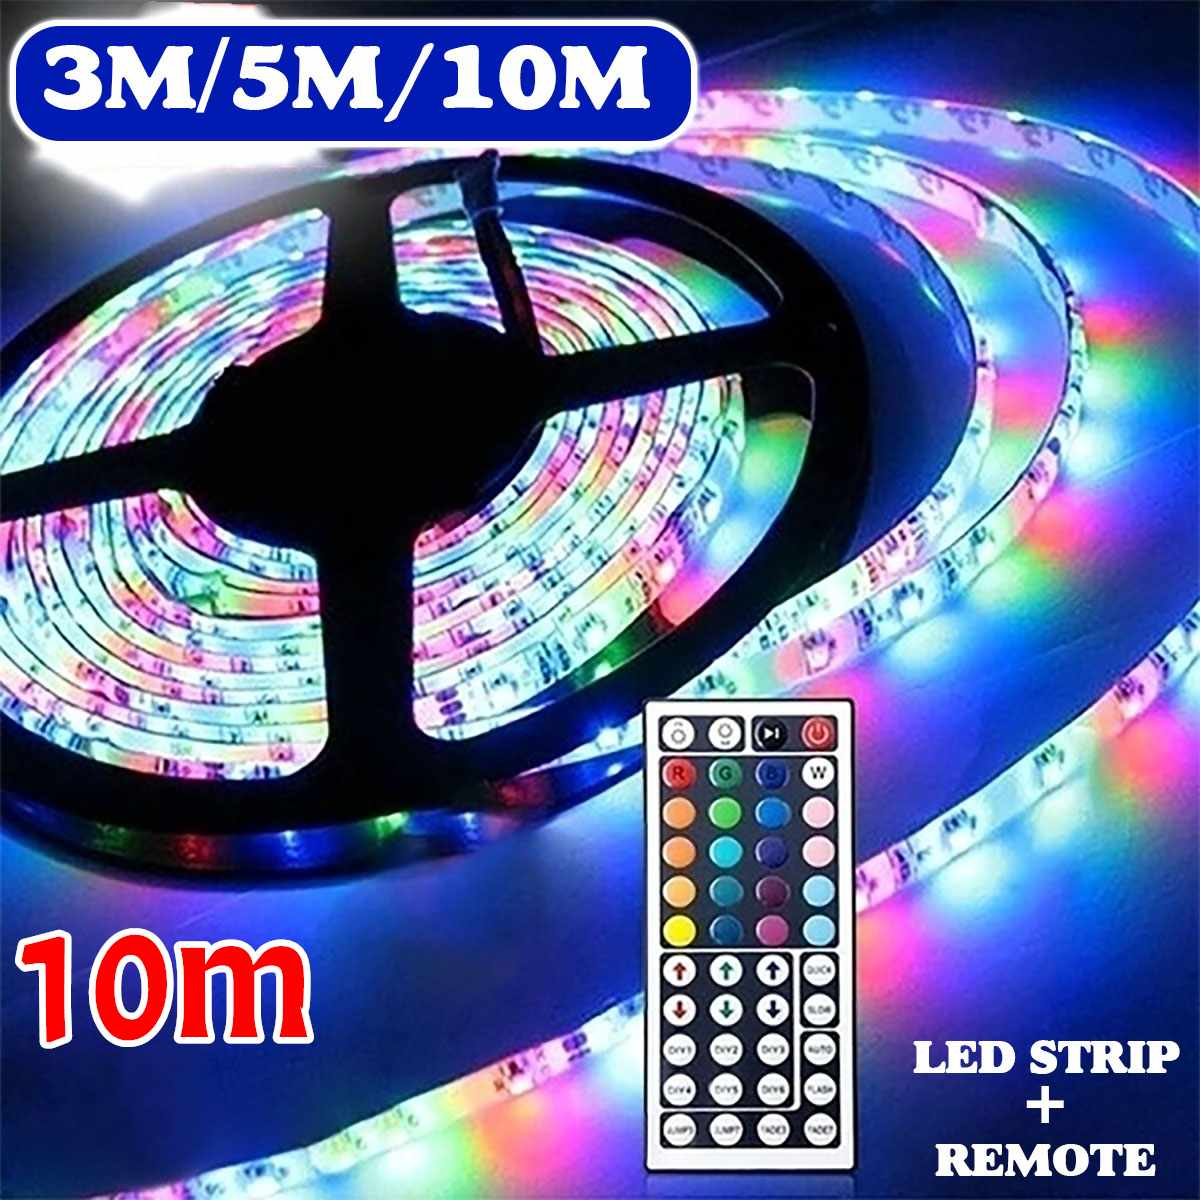 10M/5M/300CM LED Strip SMD3528 RGB 600 LED Light String Tape + 44 Key IR Remote Control For Home Decoration Non-waterproof